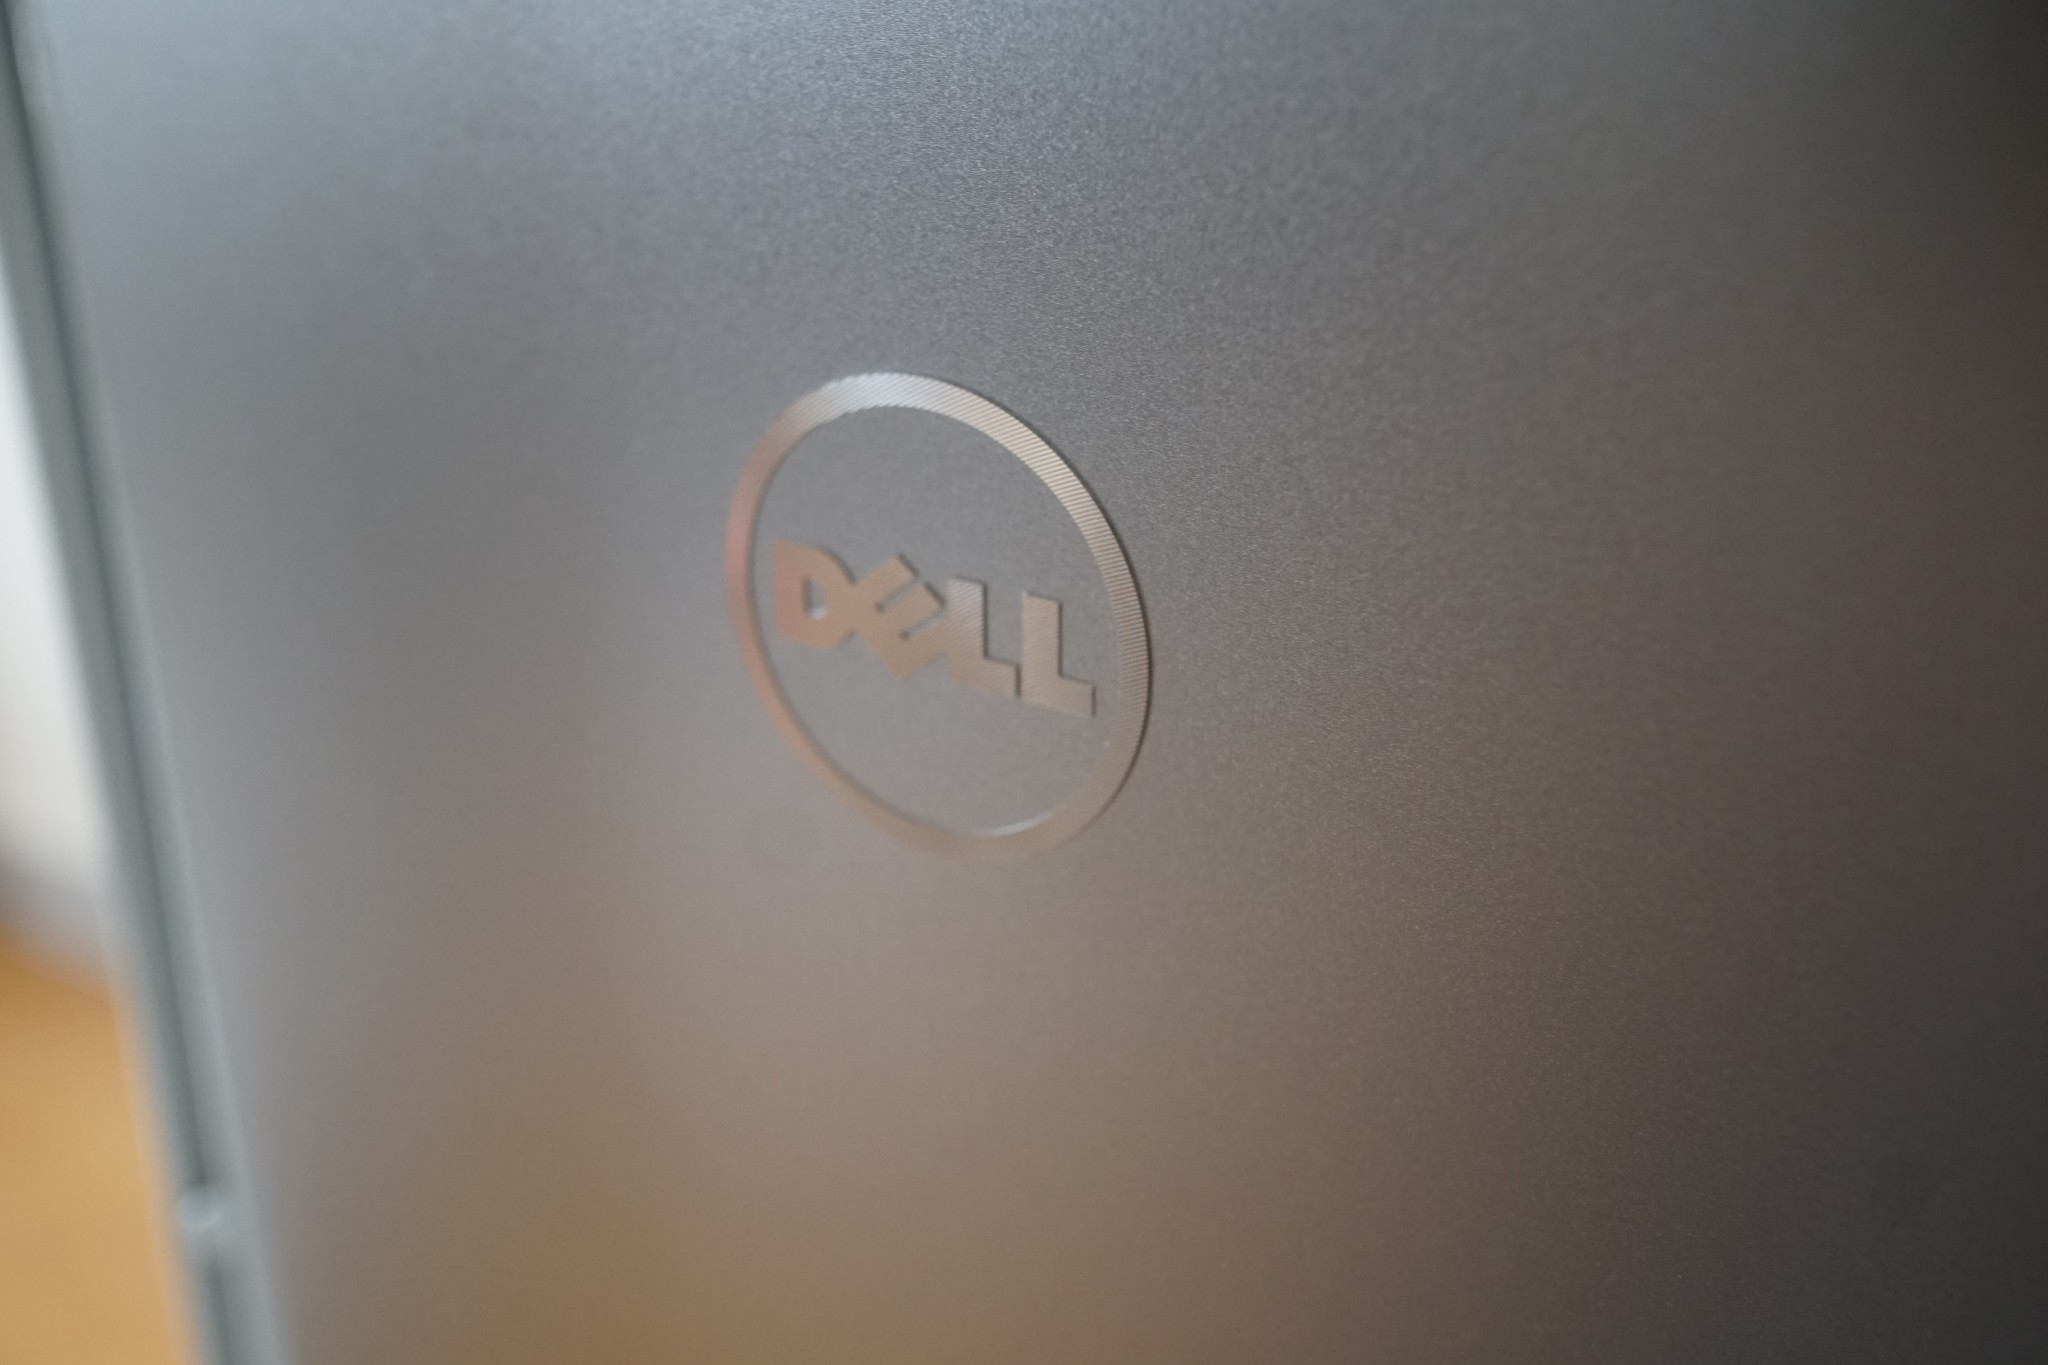 dell xps8920 special edition